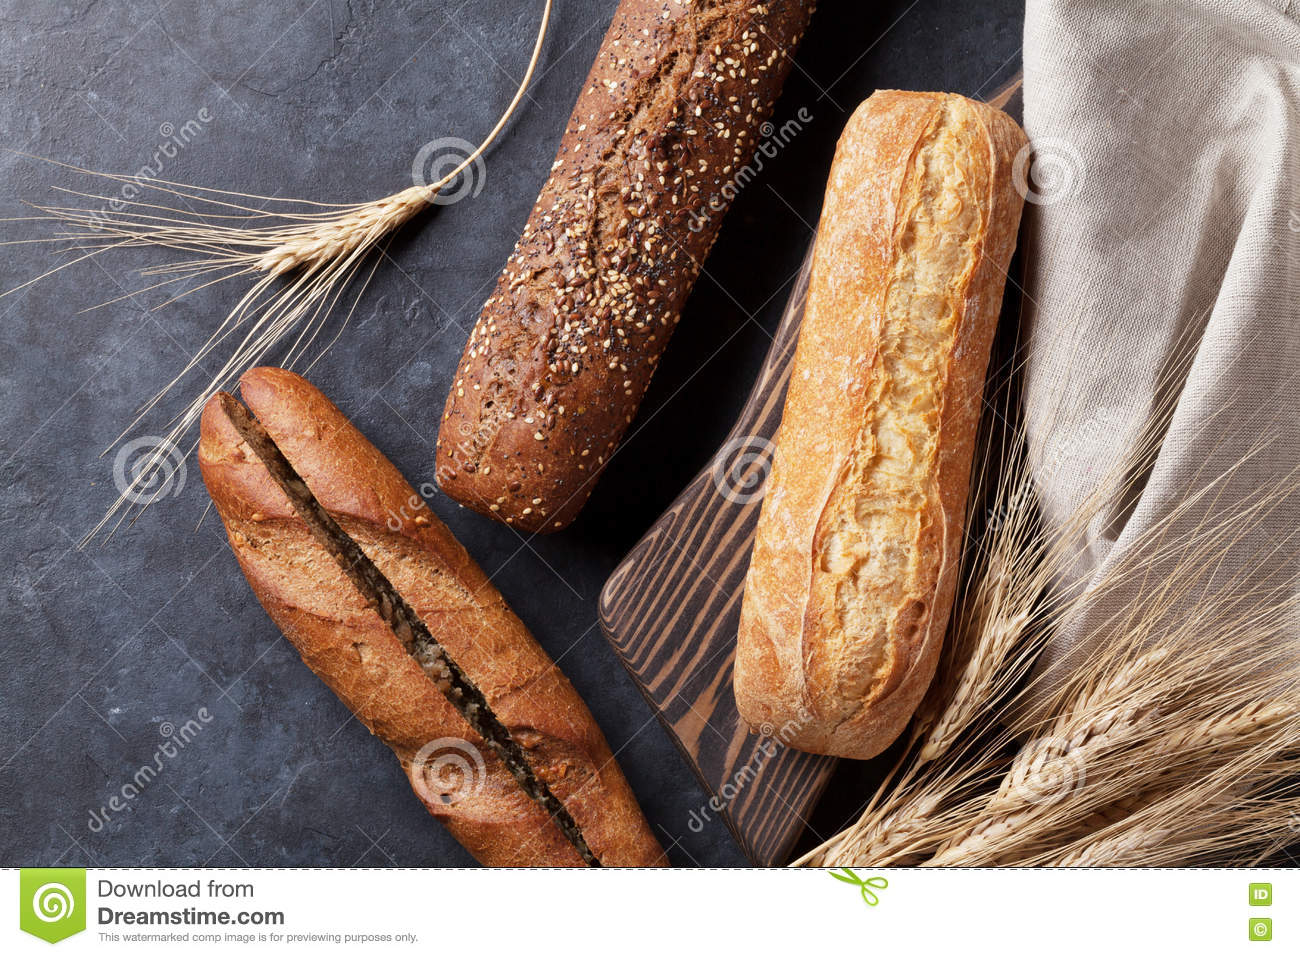 Various loaf of bread